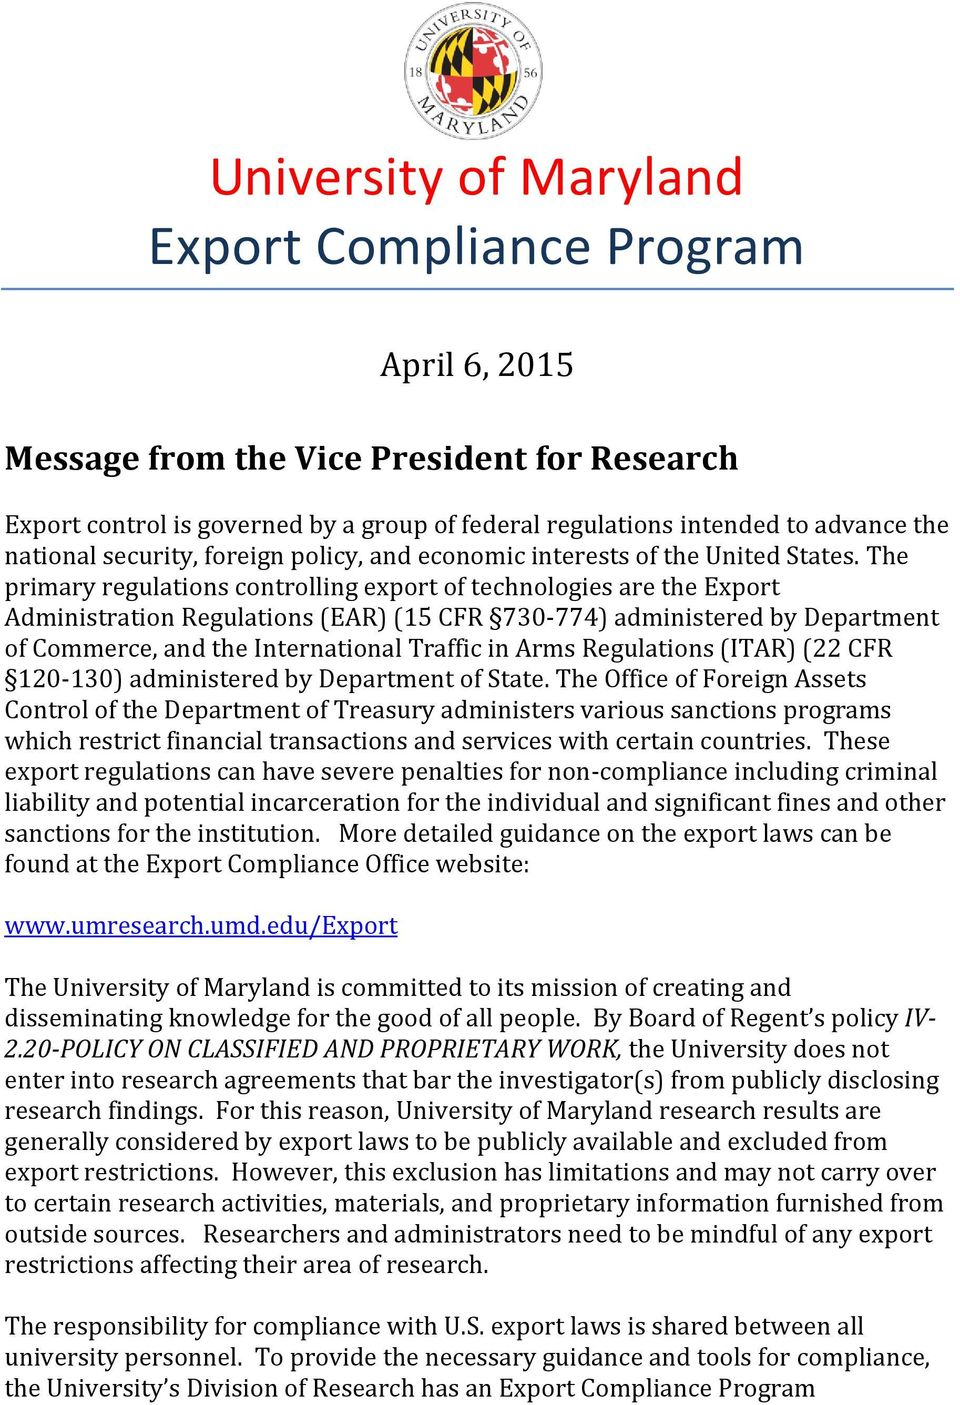 The primary regulations controlling export of technologies are the Export Administration Regulations (EAR) (15 CFR 730-774) administered by Department of Commerce, and the International Traffic in